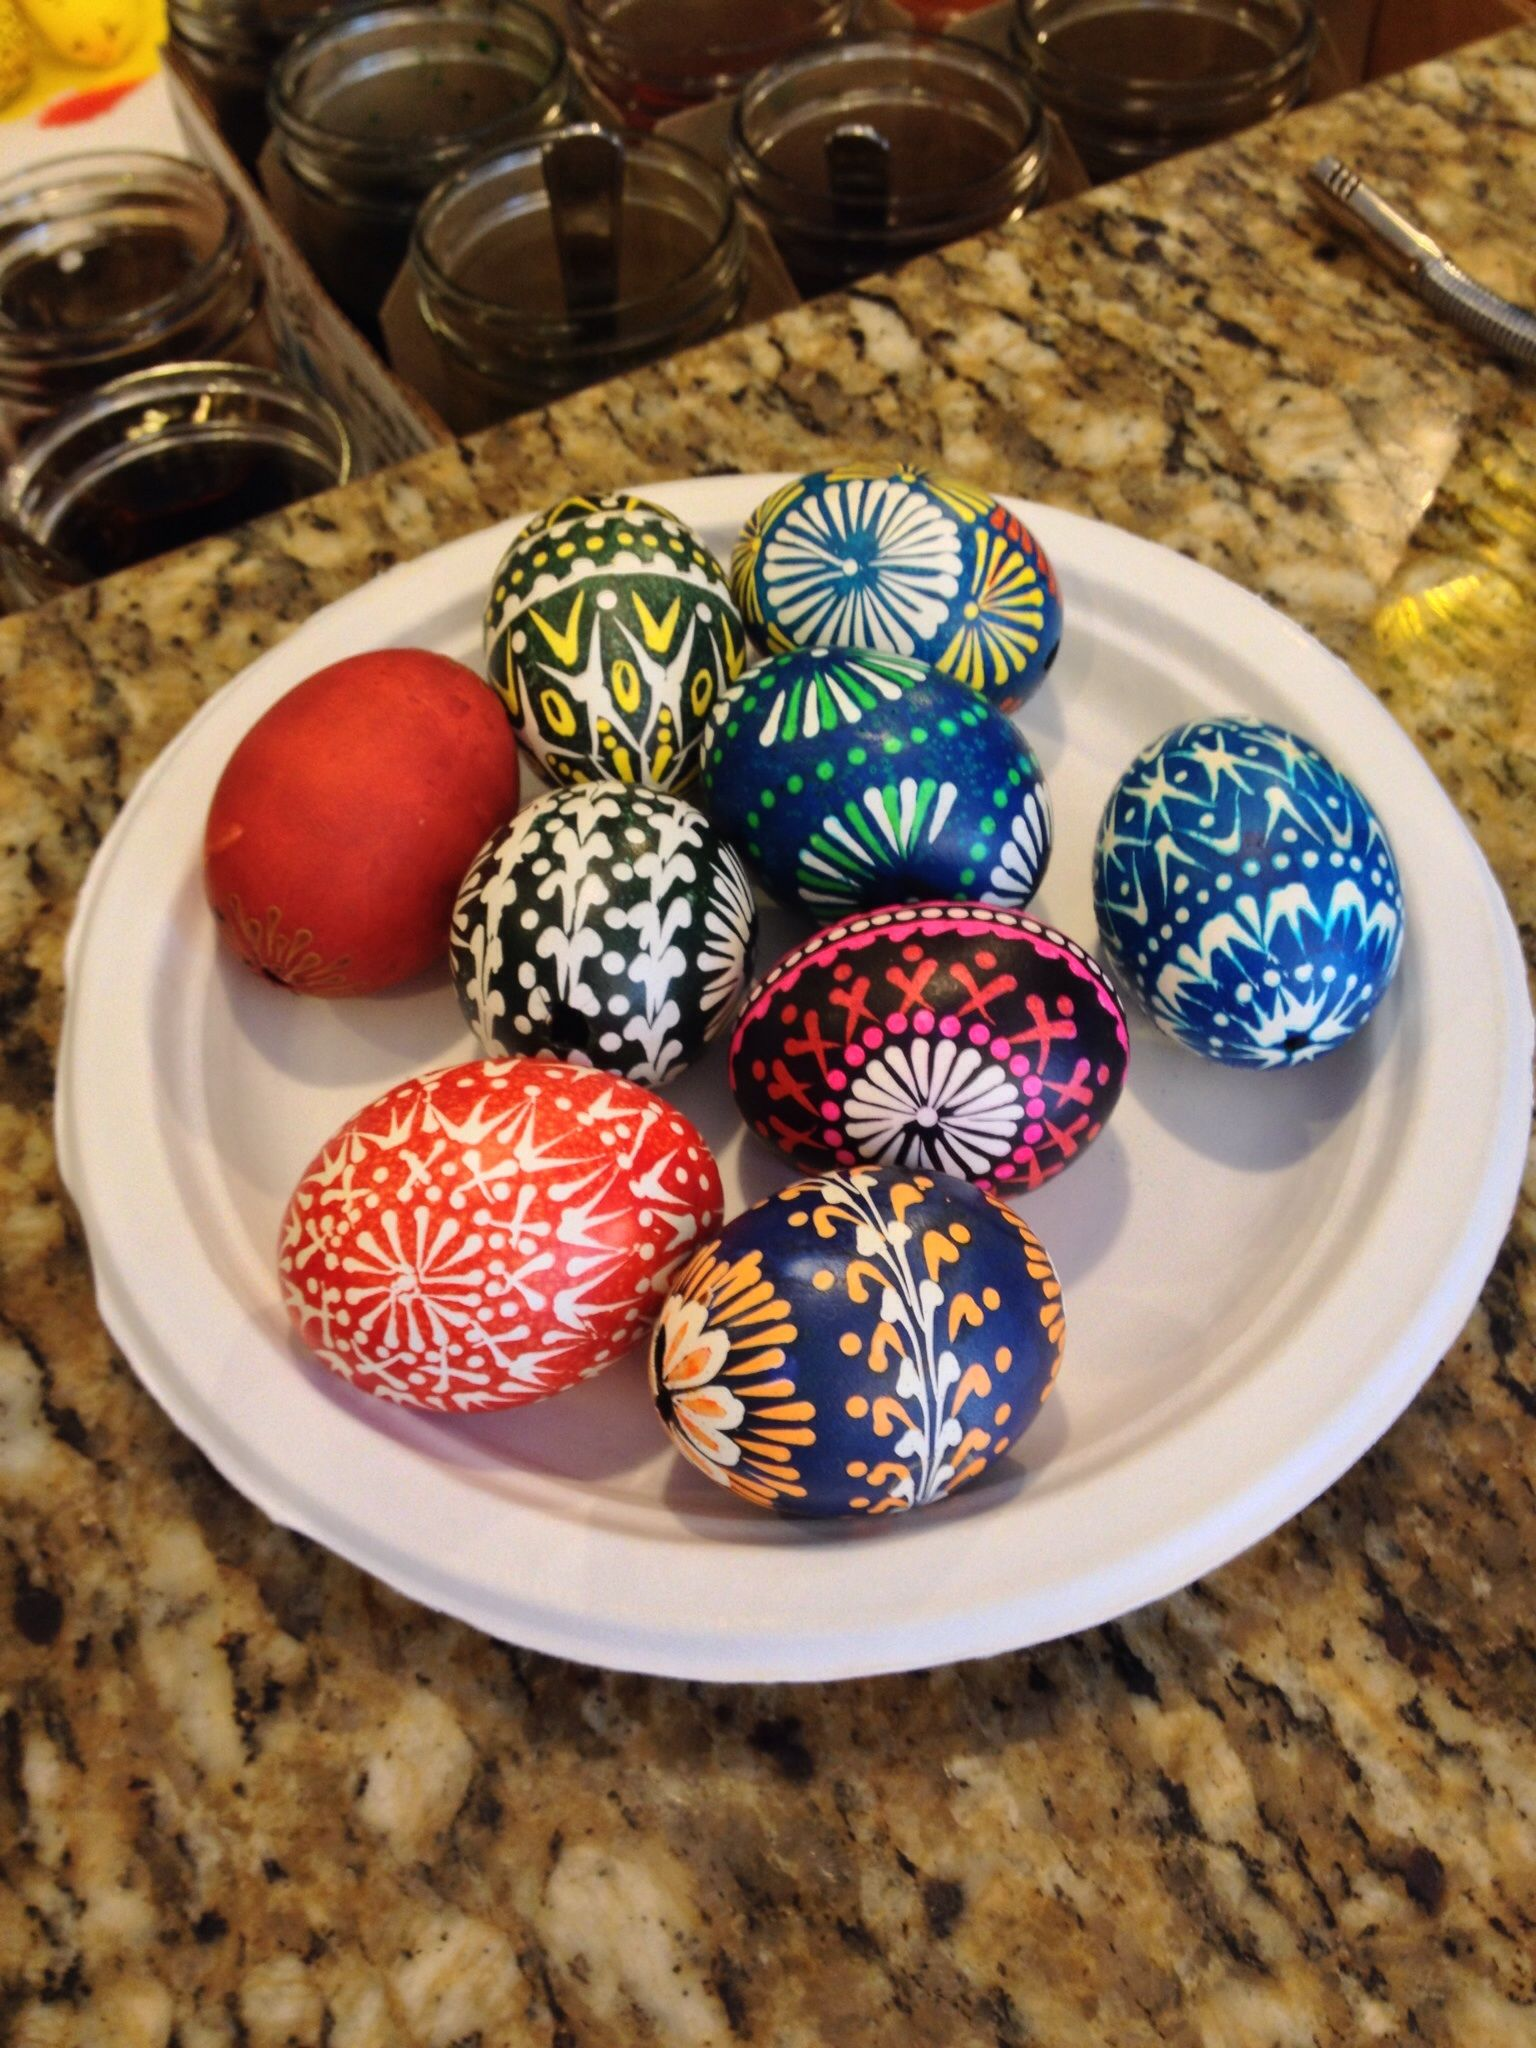 My polish mother-in-law taught me how to make Easter eggs! Such a fun craft!